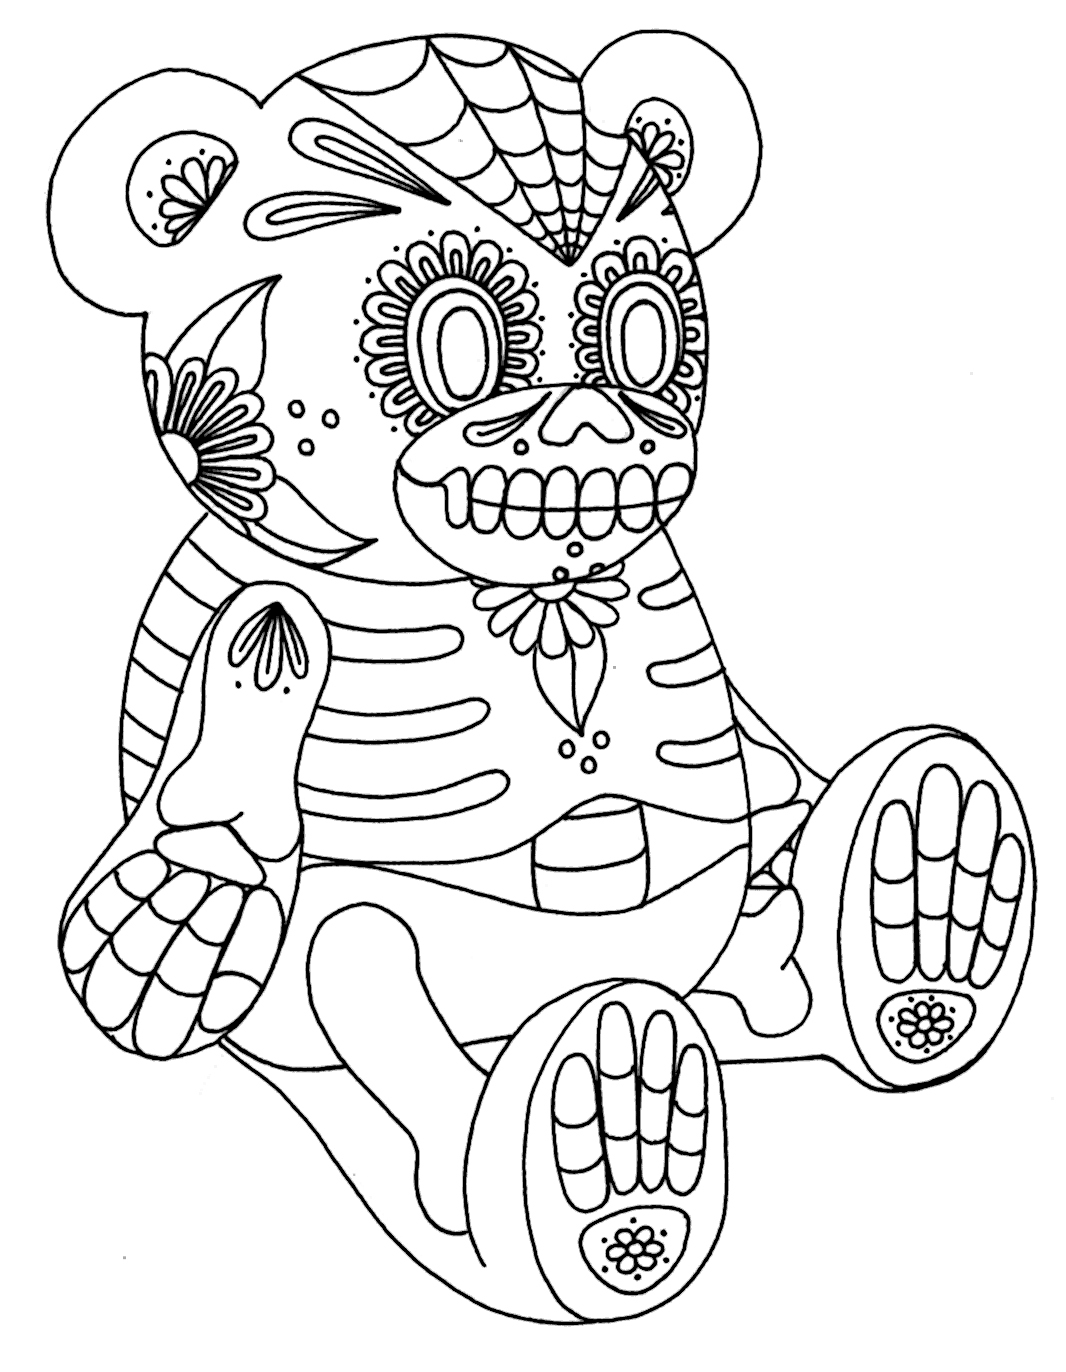 k-9 coloring page photo - 1